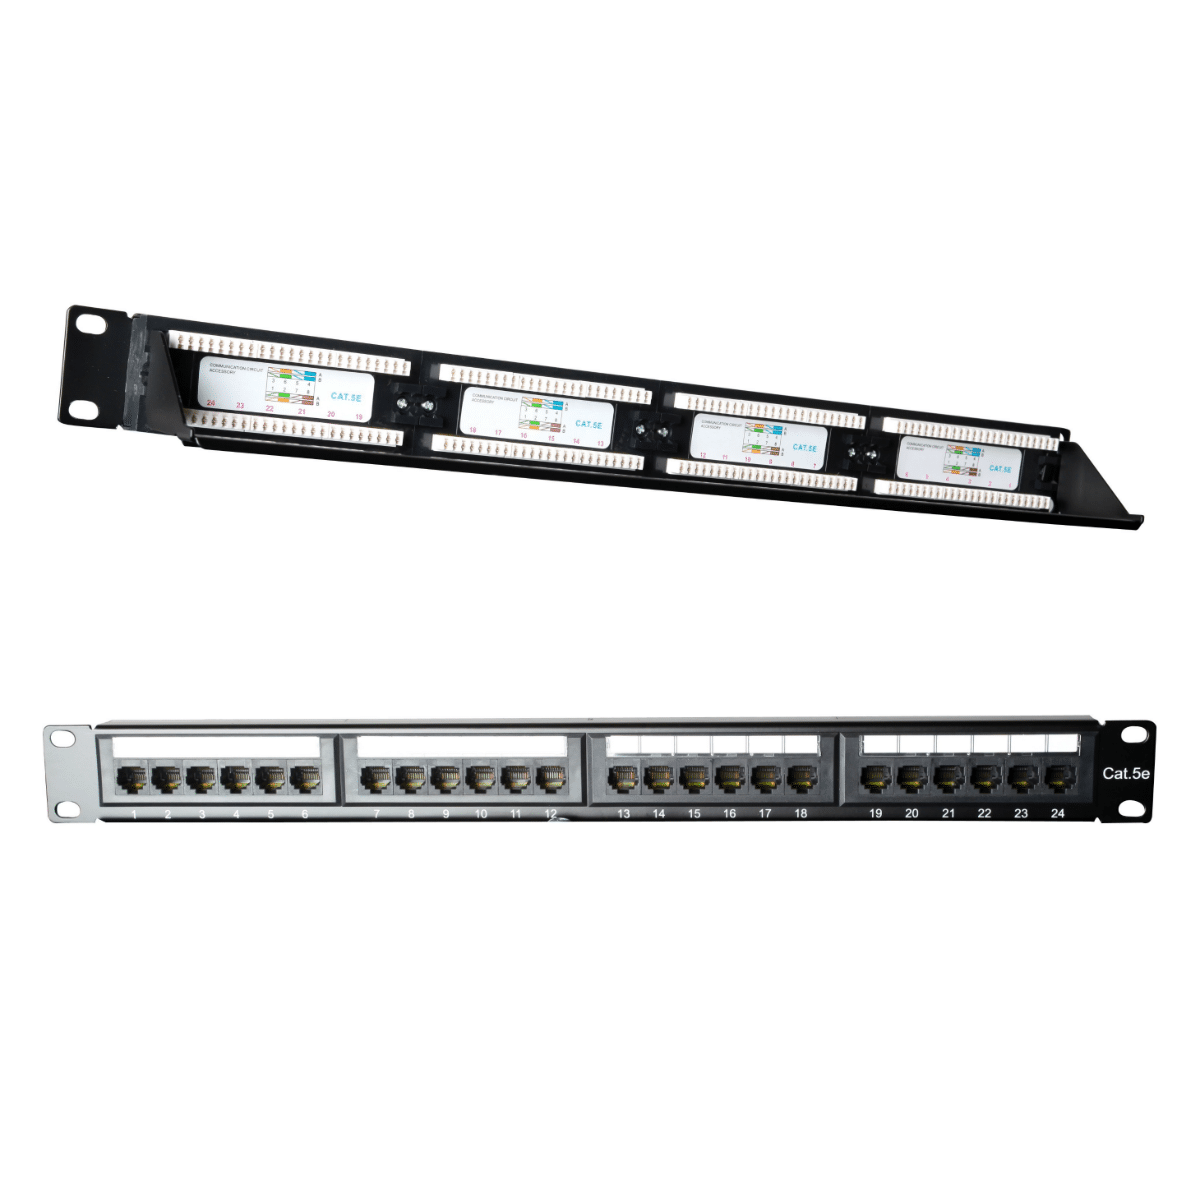 Quality Cat6 Patch Panel